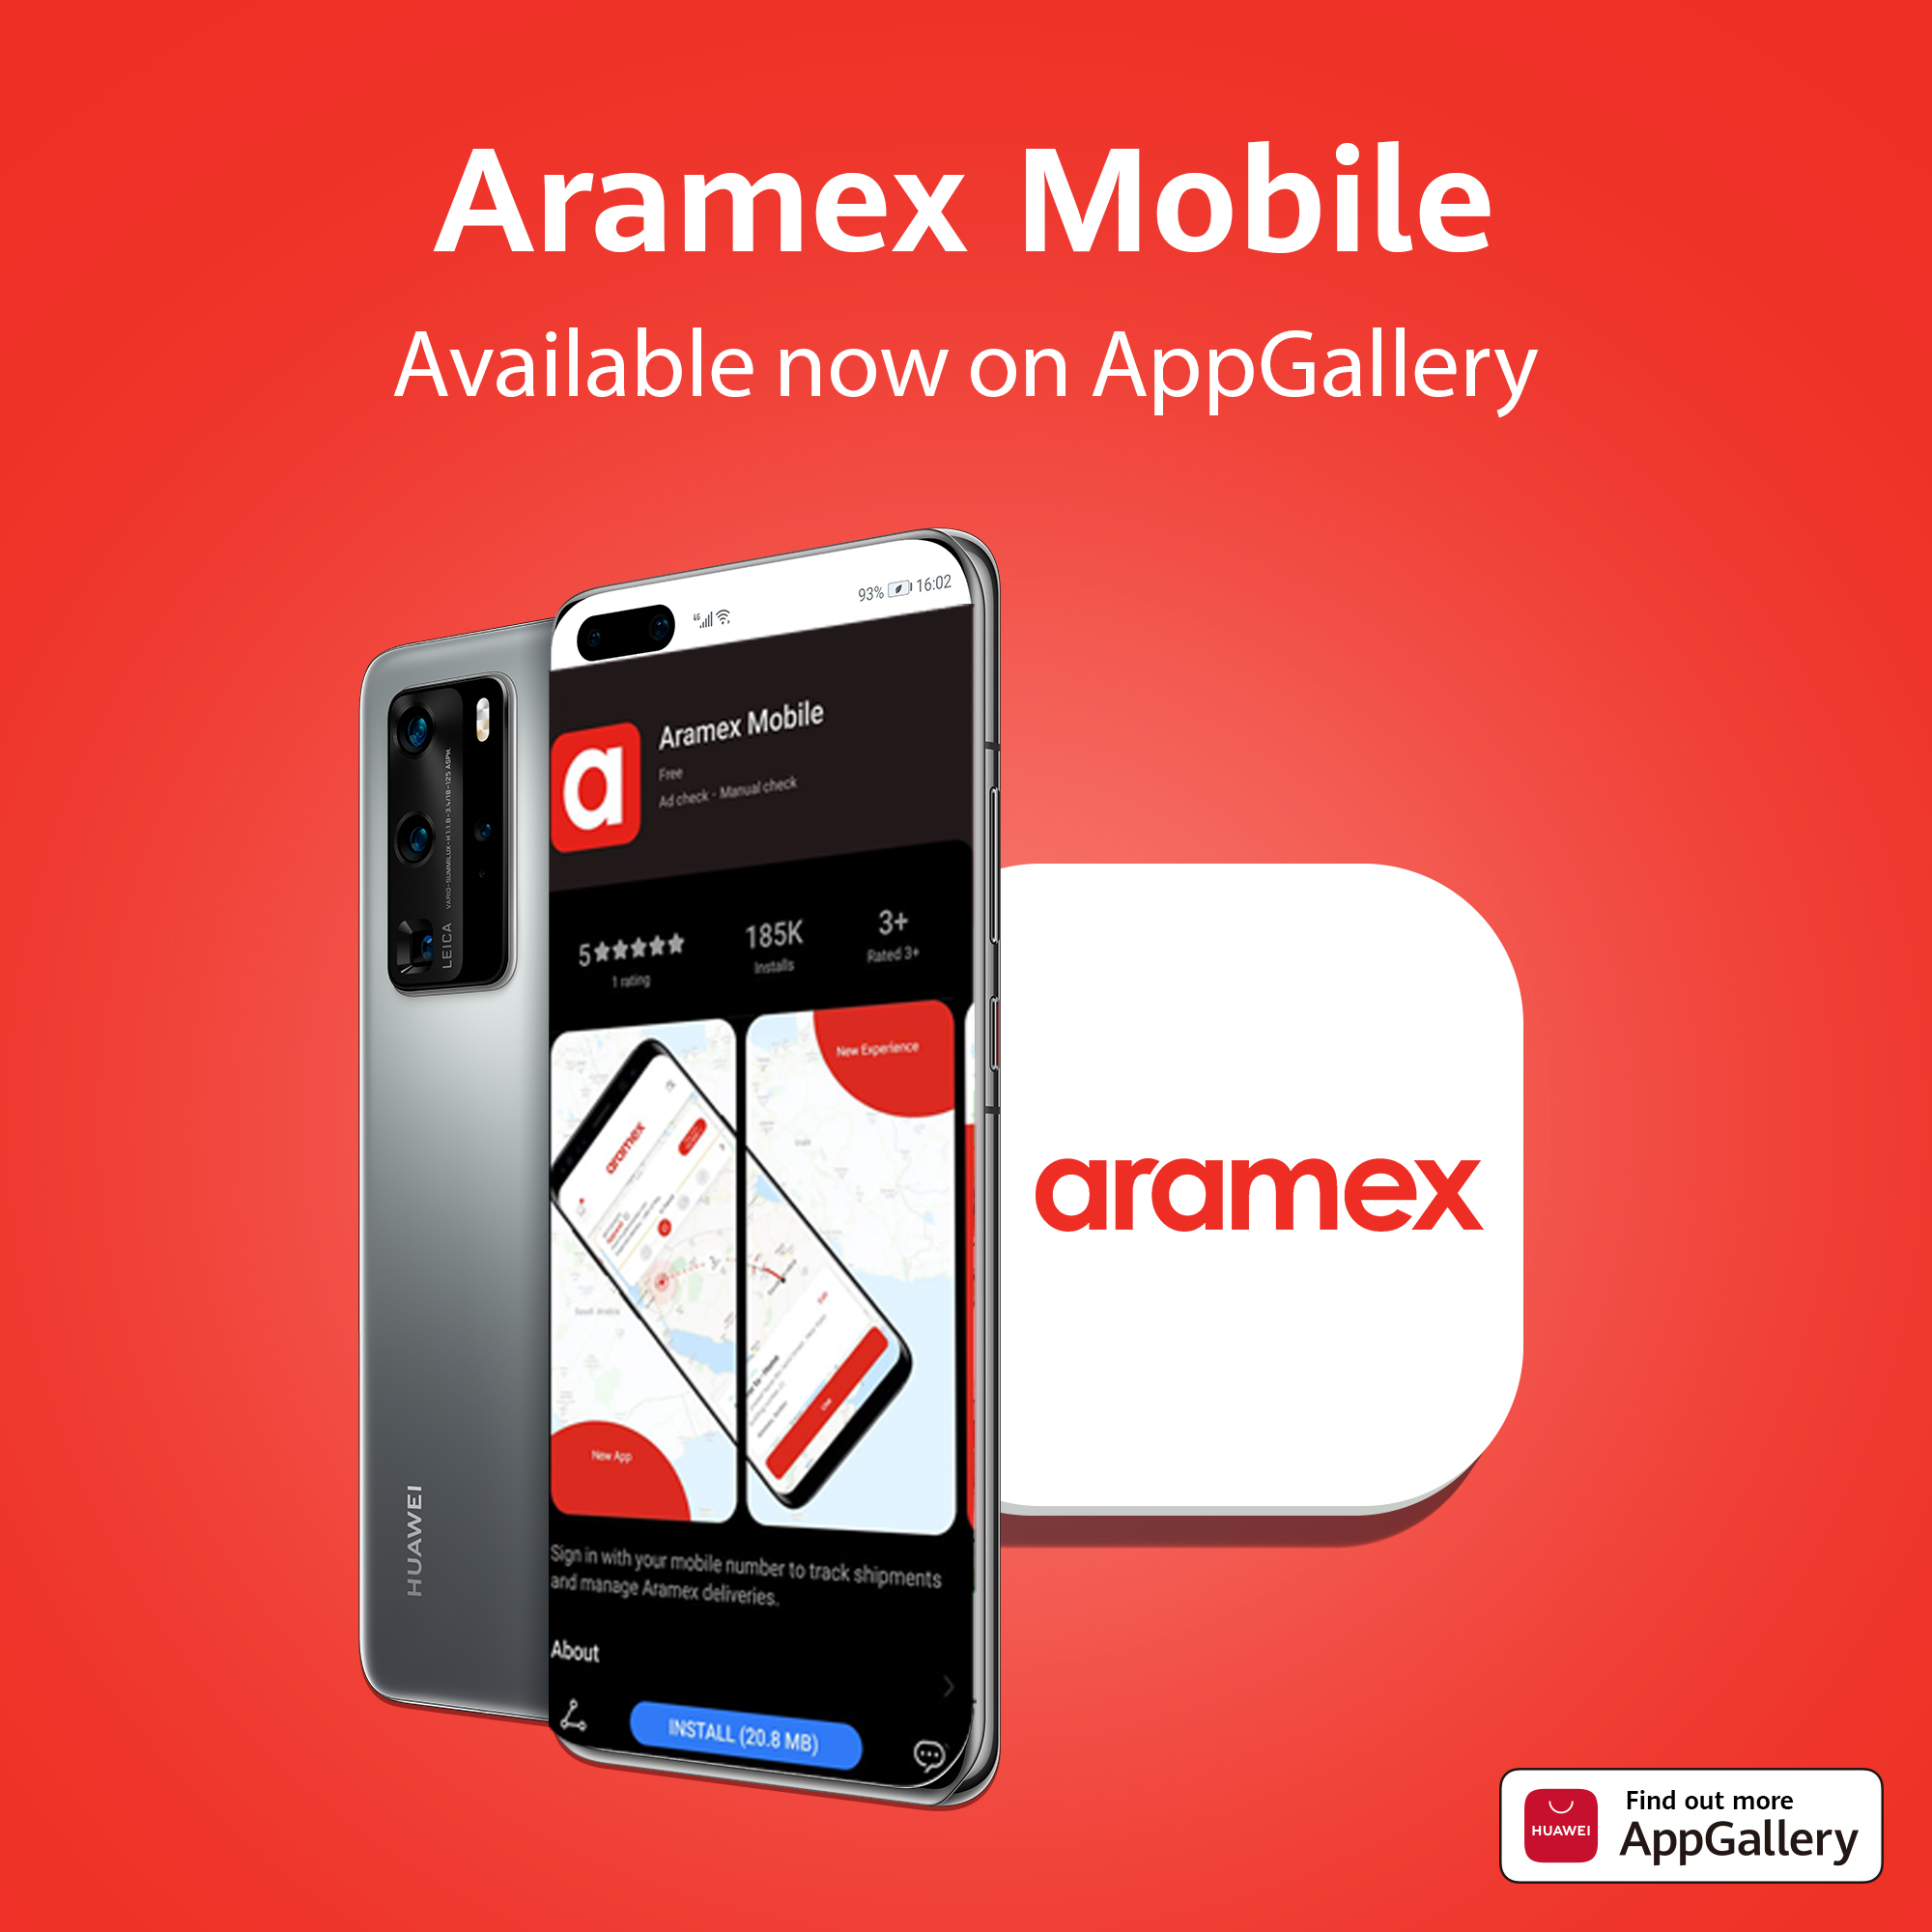 Aramex1 - AppGallery expands its app offering by adding Aramex Mobile App